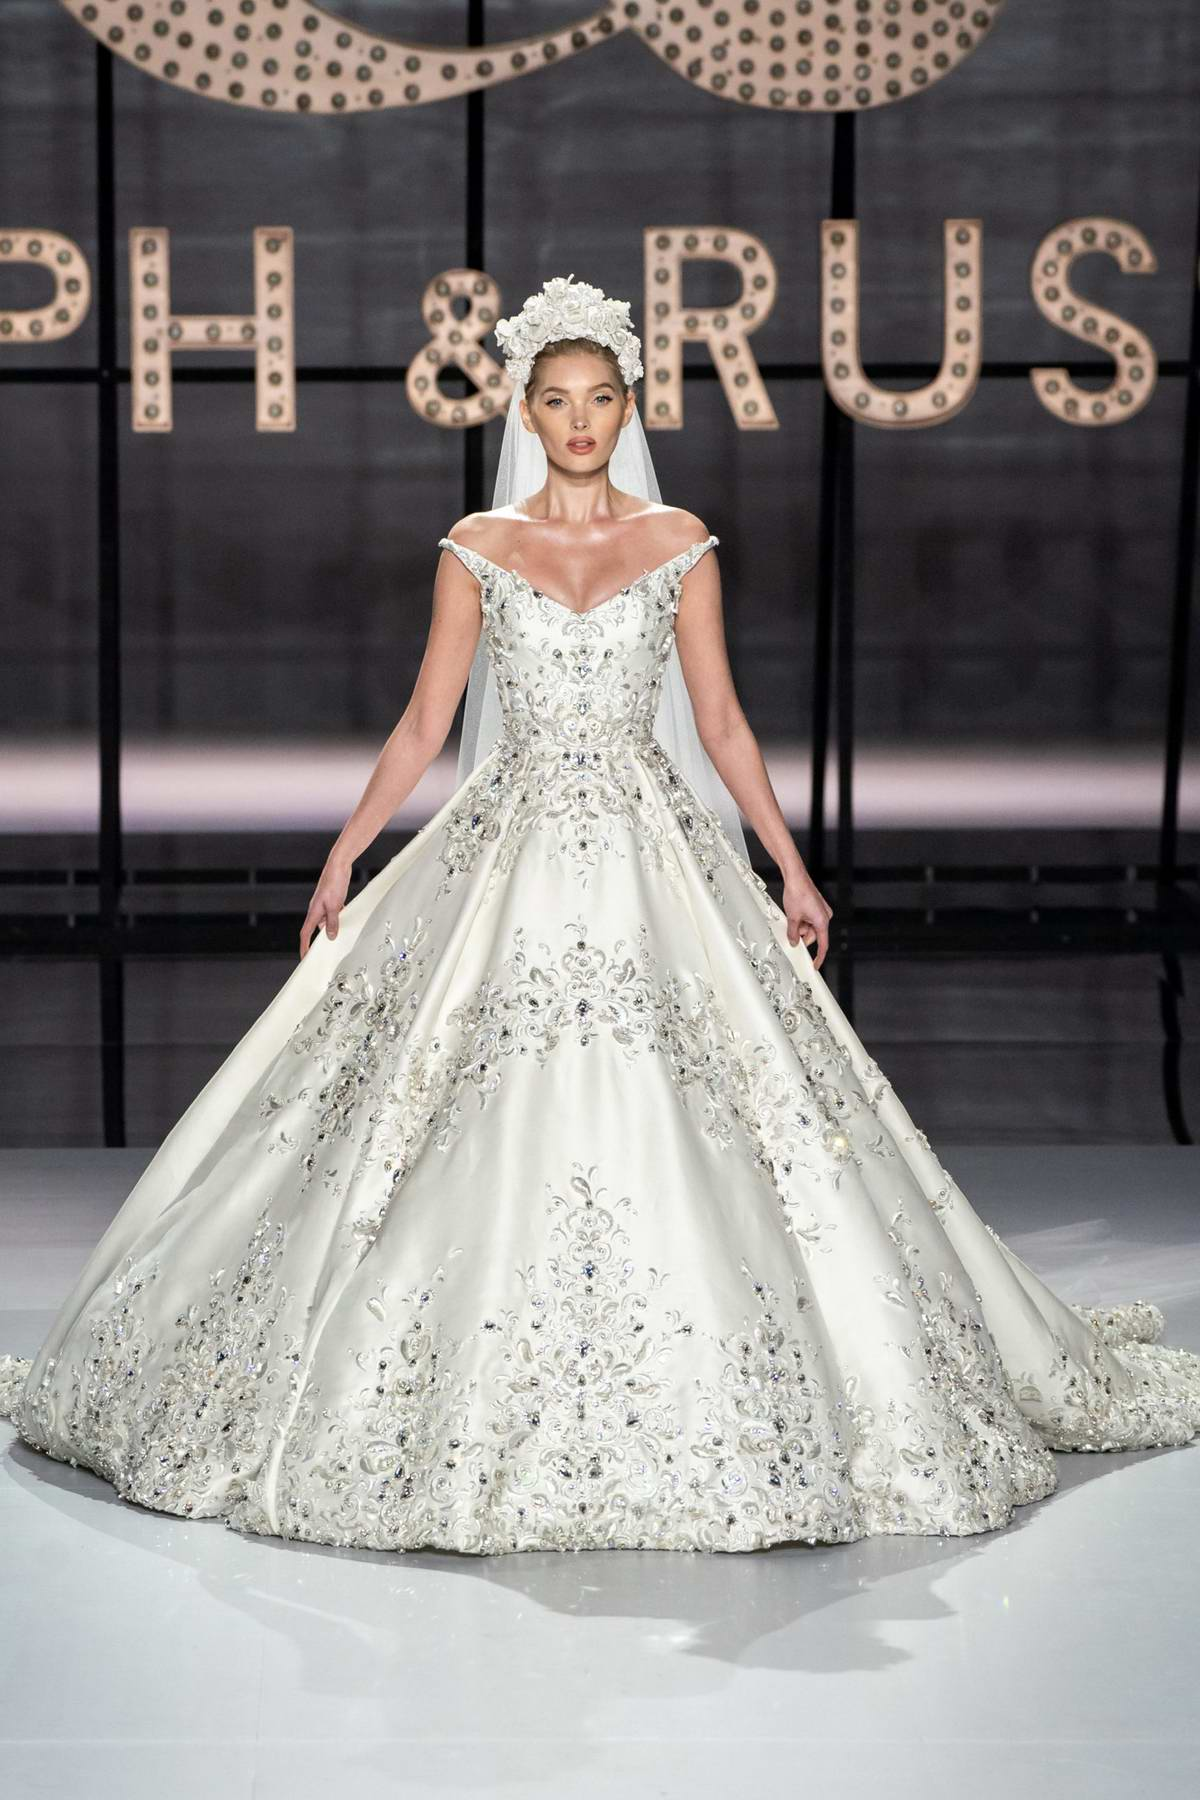 Elsa Hosk walks the runway at the Ralph & Russo Show, Haute Couture Spring/Summer 2019 during Paris Fashion Week, Paris, France